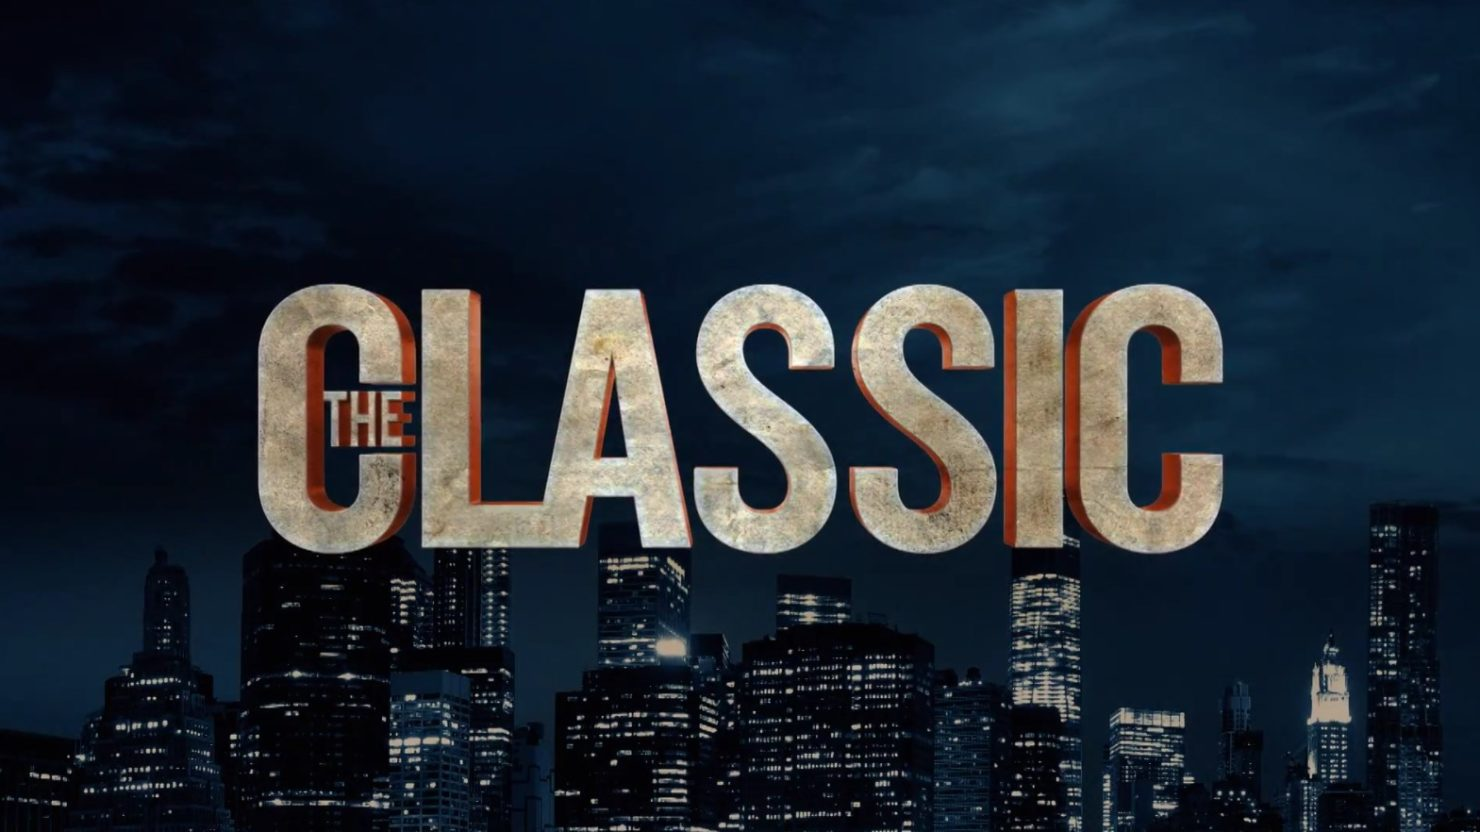 The Classic West & The Classic East Concerts Confirmed For